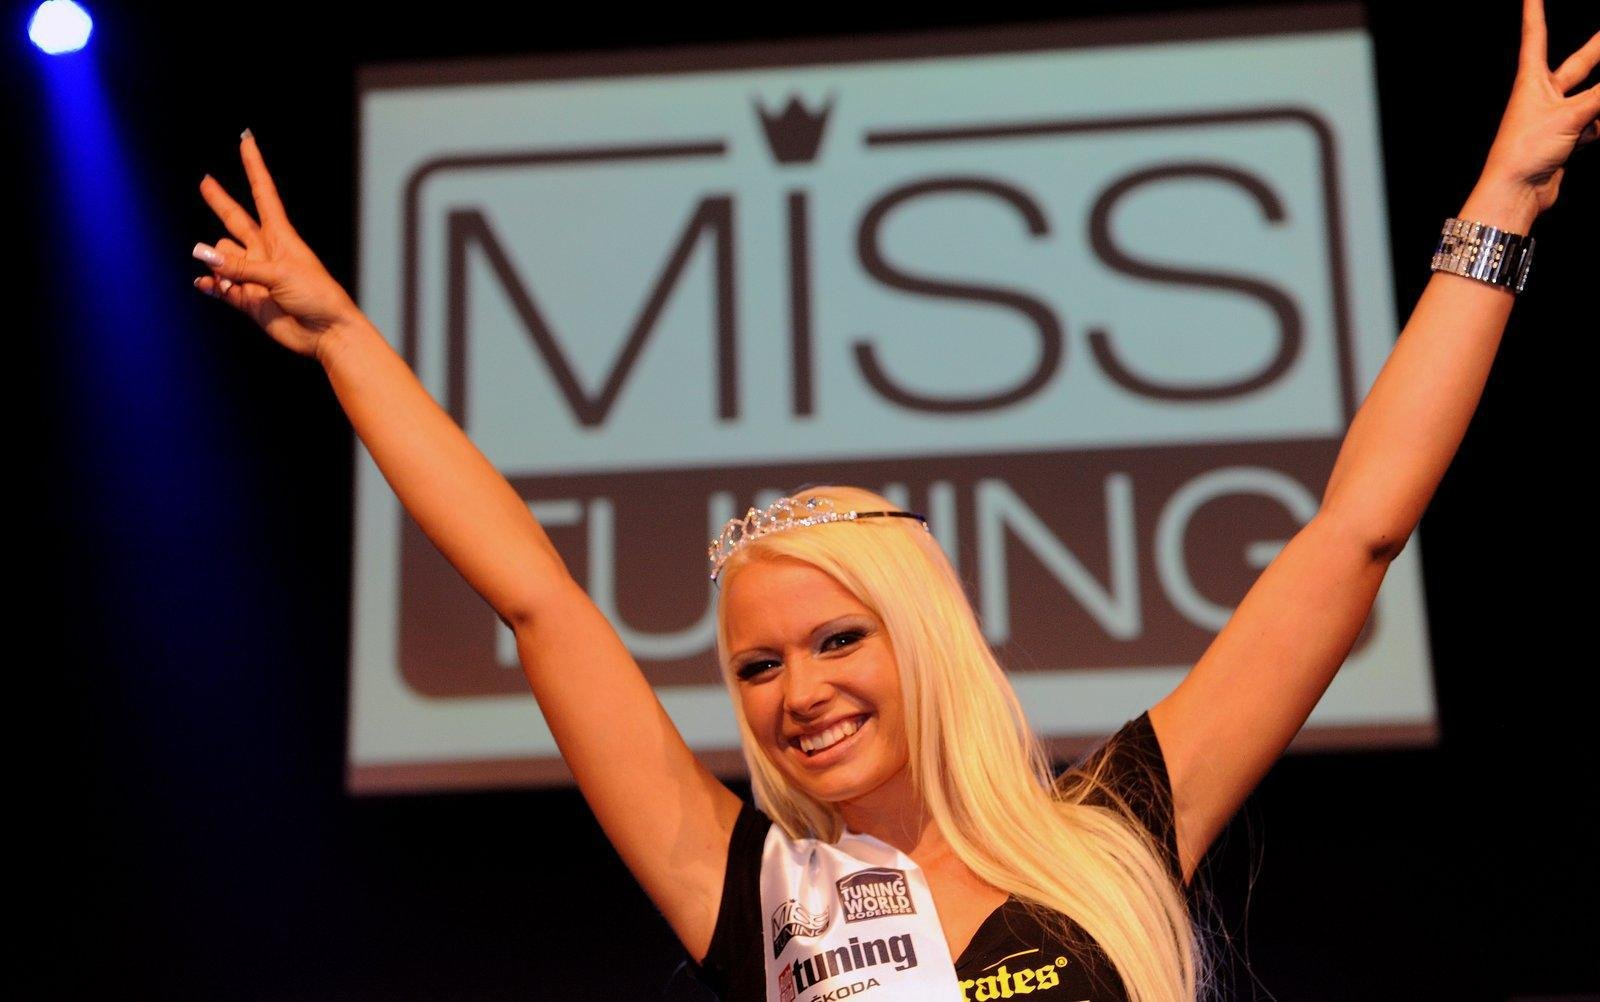 named Miss Tuning 2011 at